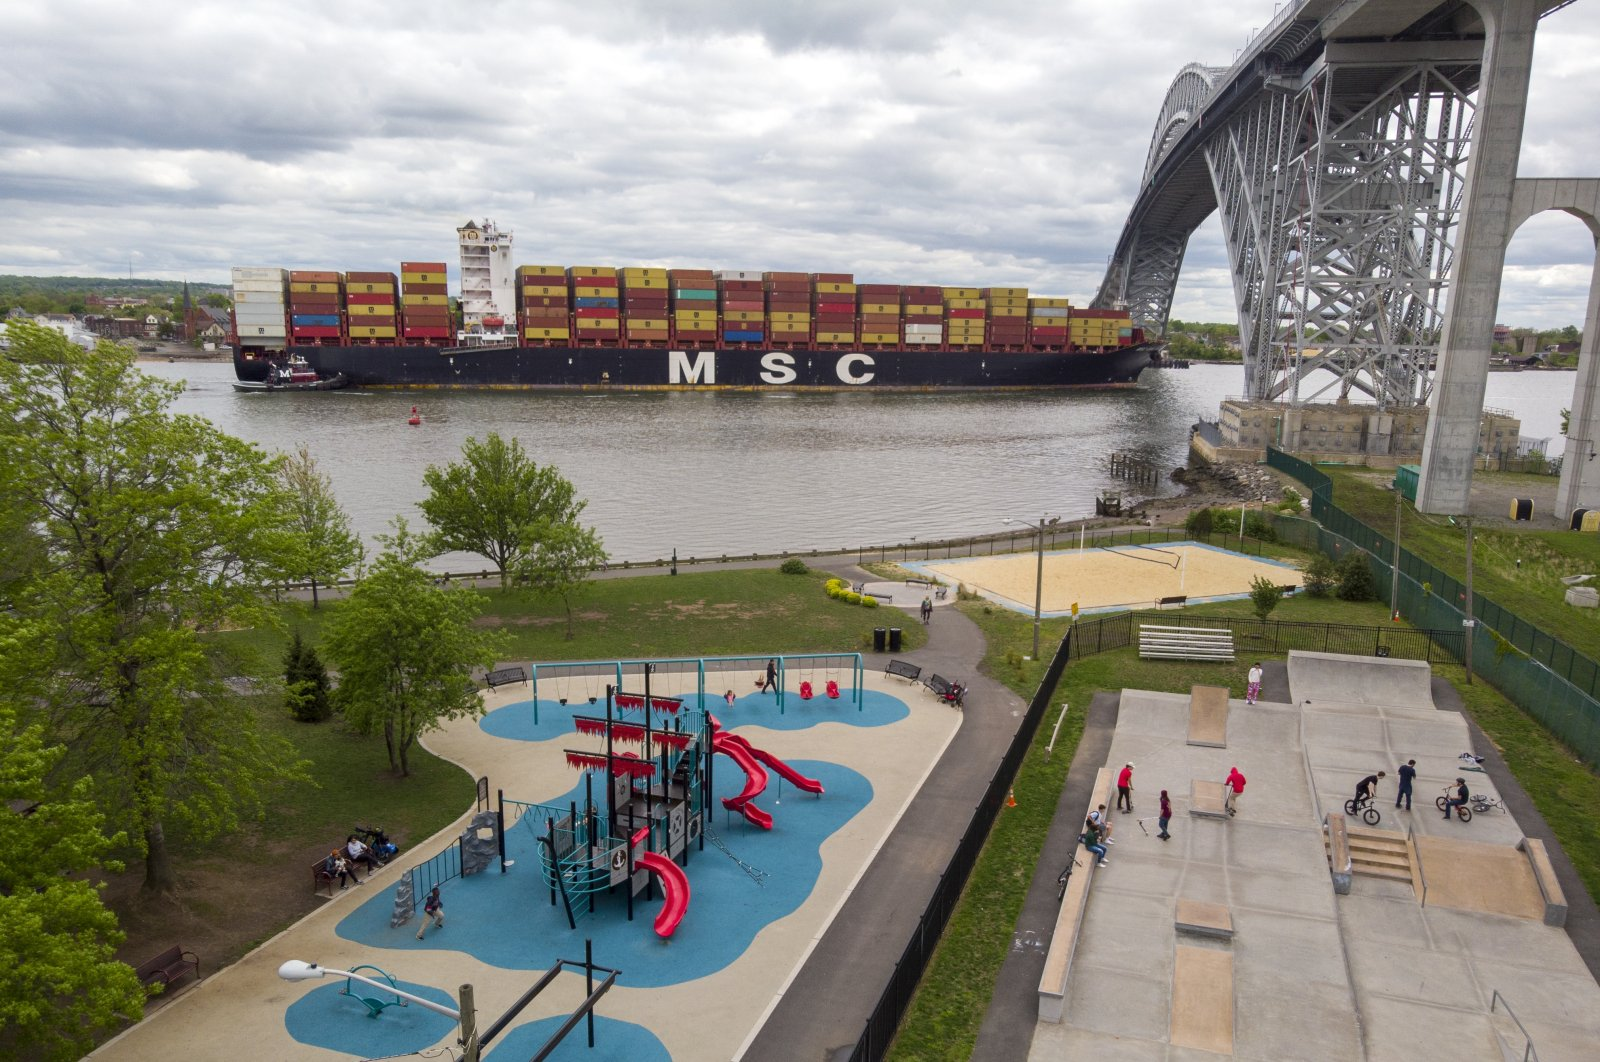 A container ship passes near a playground and a skate park at Bayonne Bridge in Bayonne, New Jersey, U.S., May 10, 2021. (AP Photo)